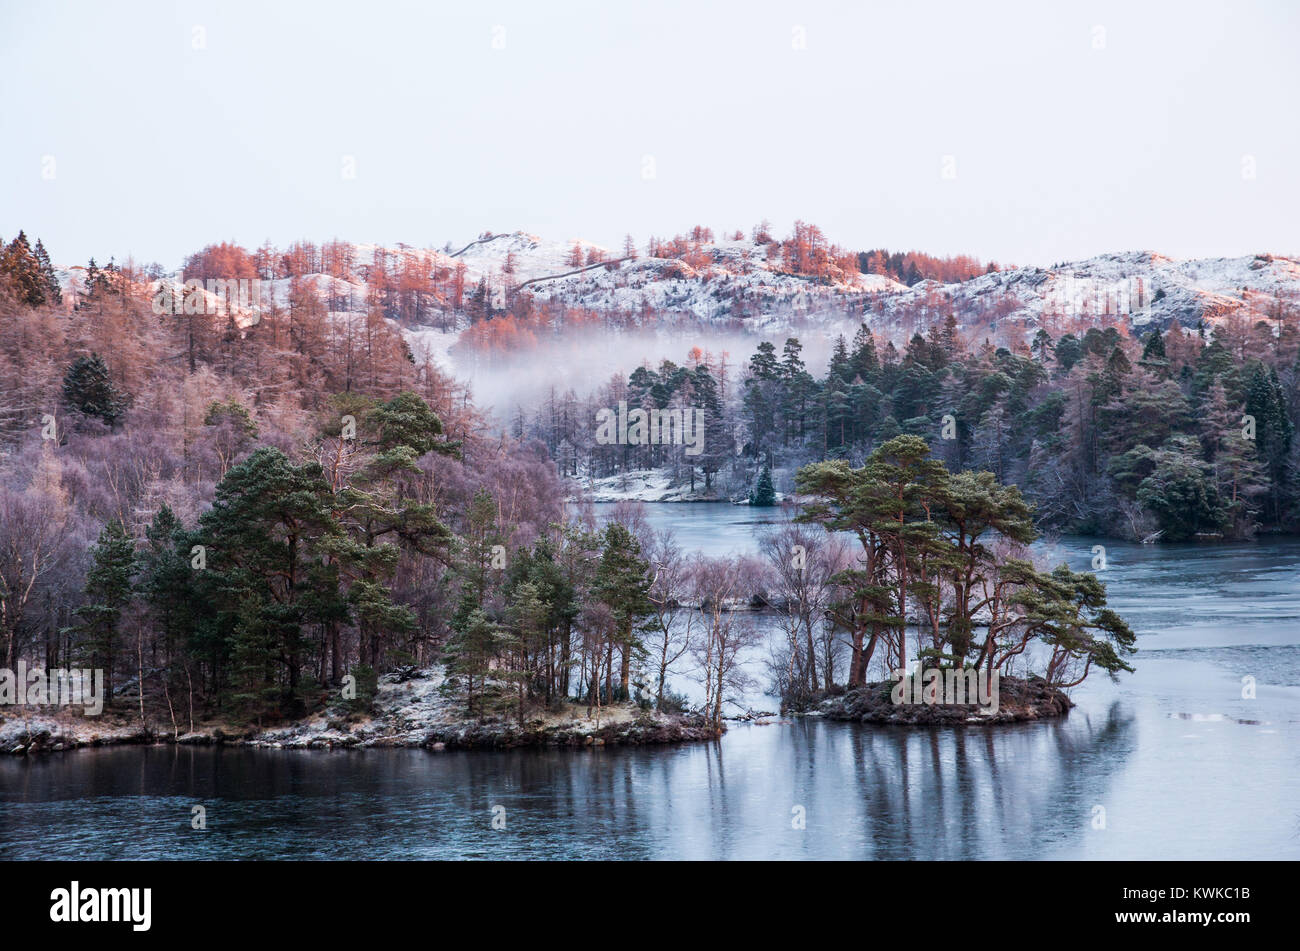 A morning scene on Tarn Hows lake with first sunlight hitting the frost covered hills and mist in low areas. - Stock Image